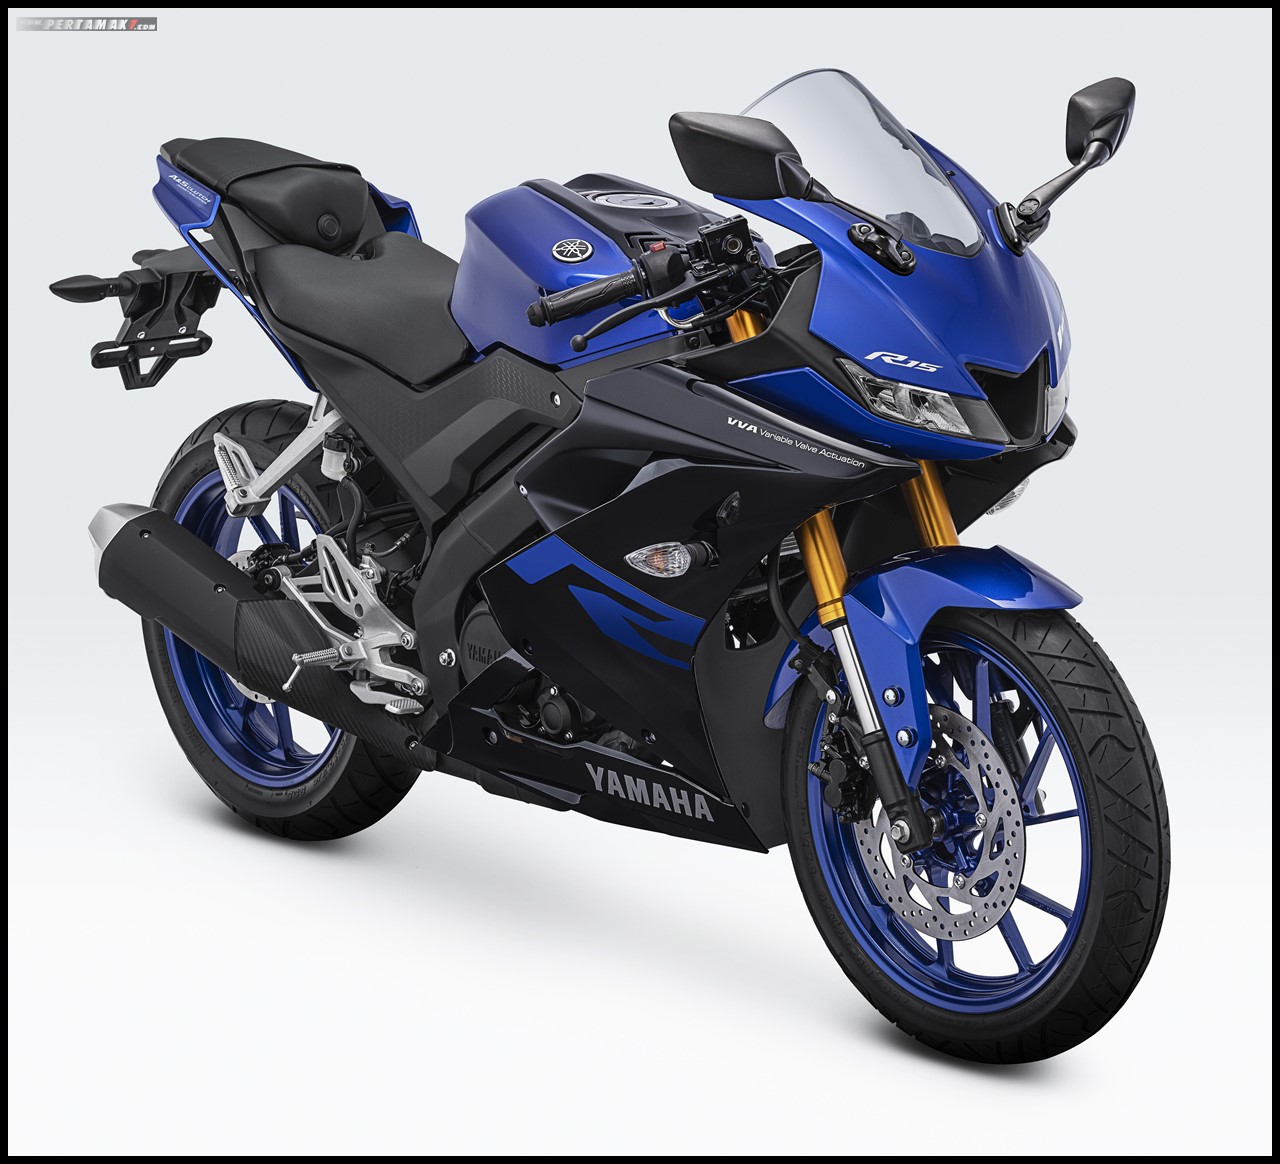 Yamaha New R15 V3.0 2019 Warna Biru